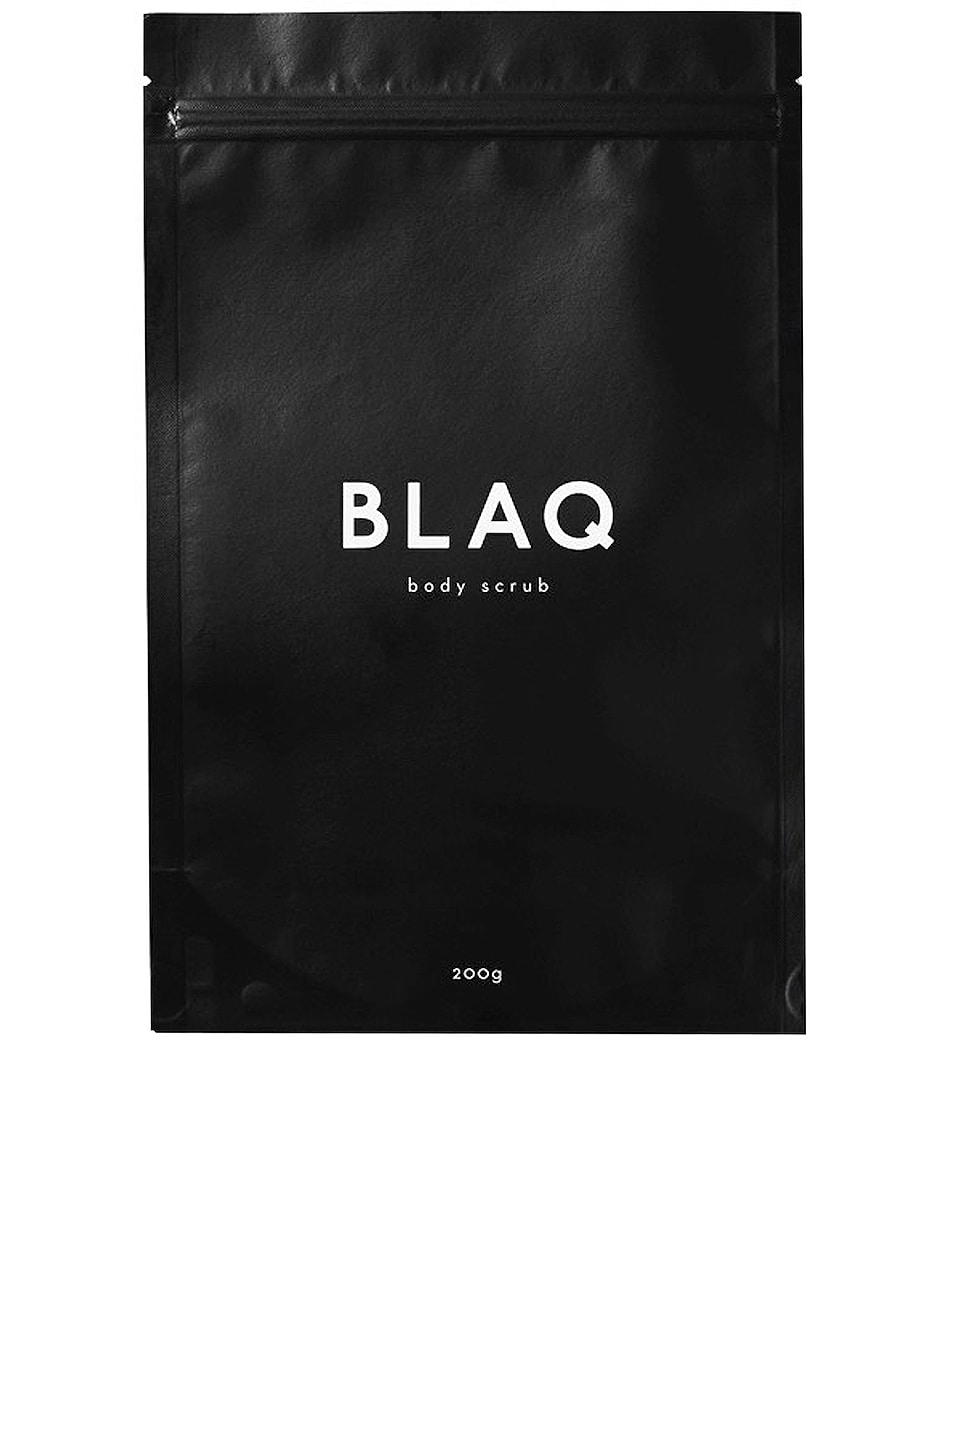 BLAQ Activated Charcoal Body Scrub in N/A